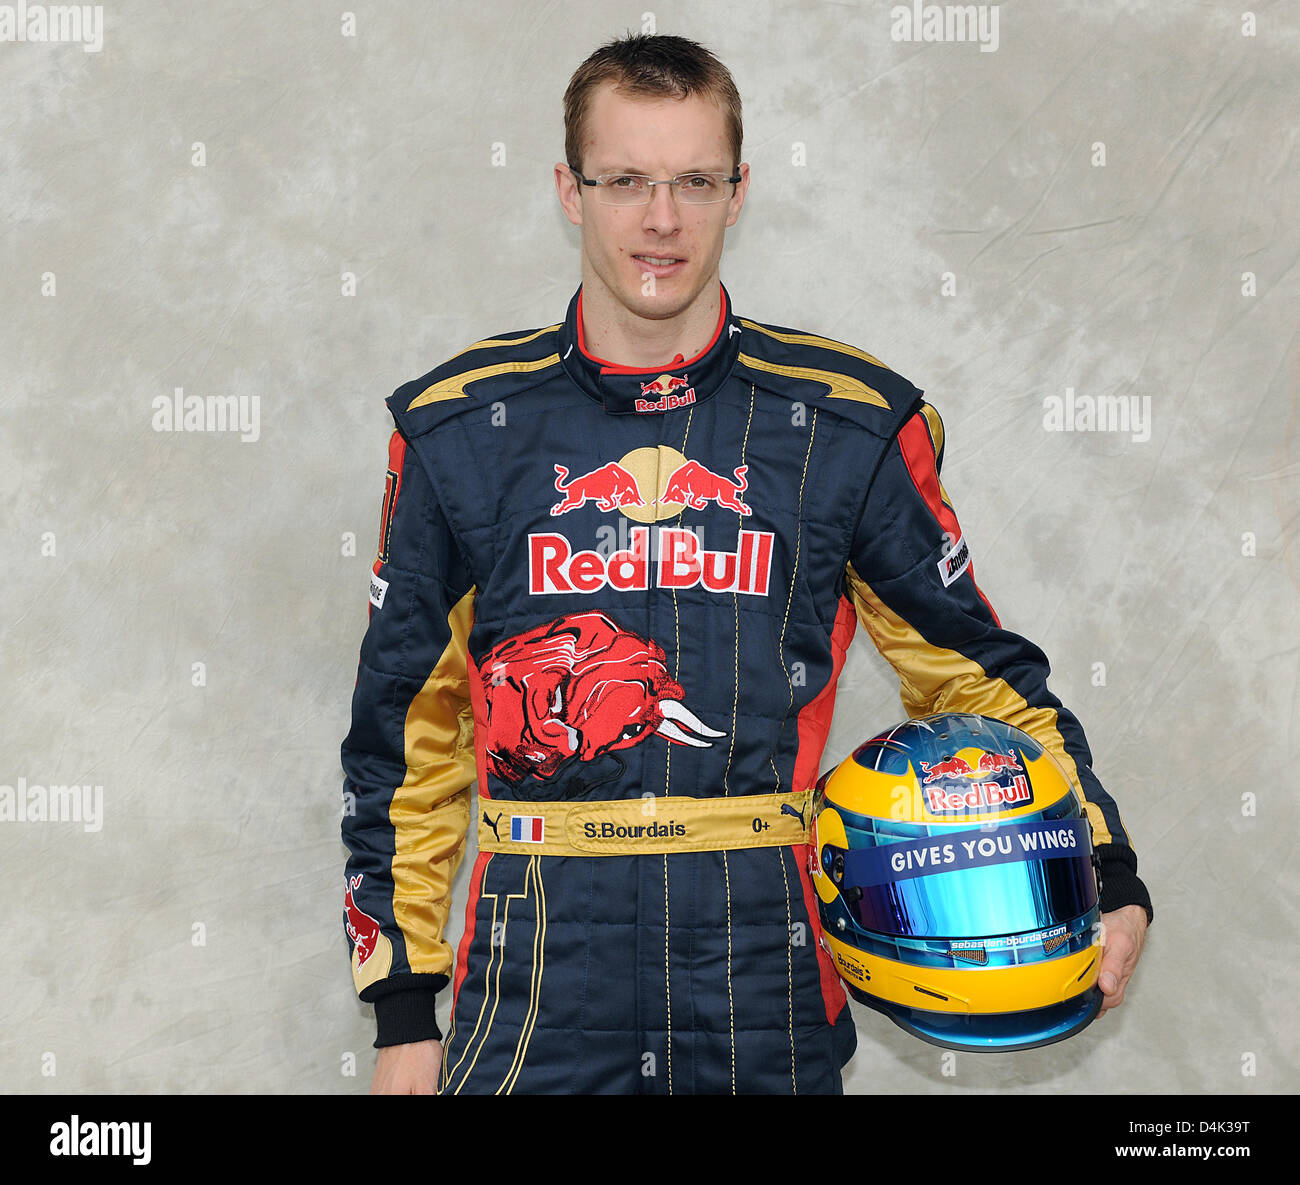 French Formula One driver Sebastien Bourdais of team Toro Rosso poses during a photo call at Albert Park Circuit Stock Photo